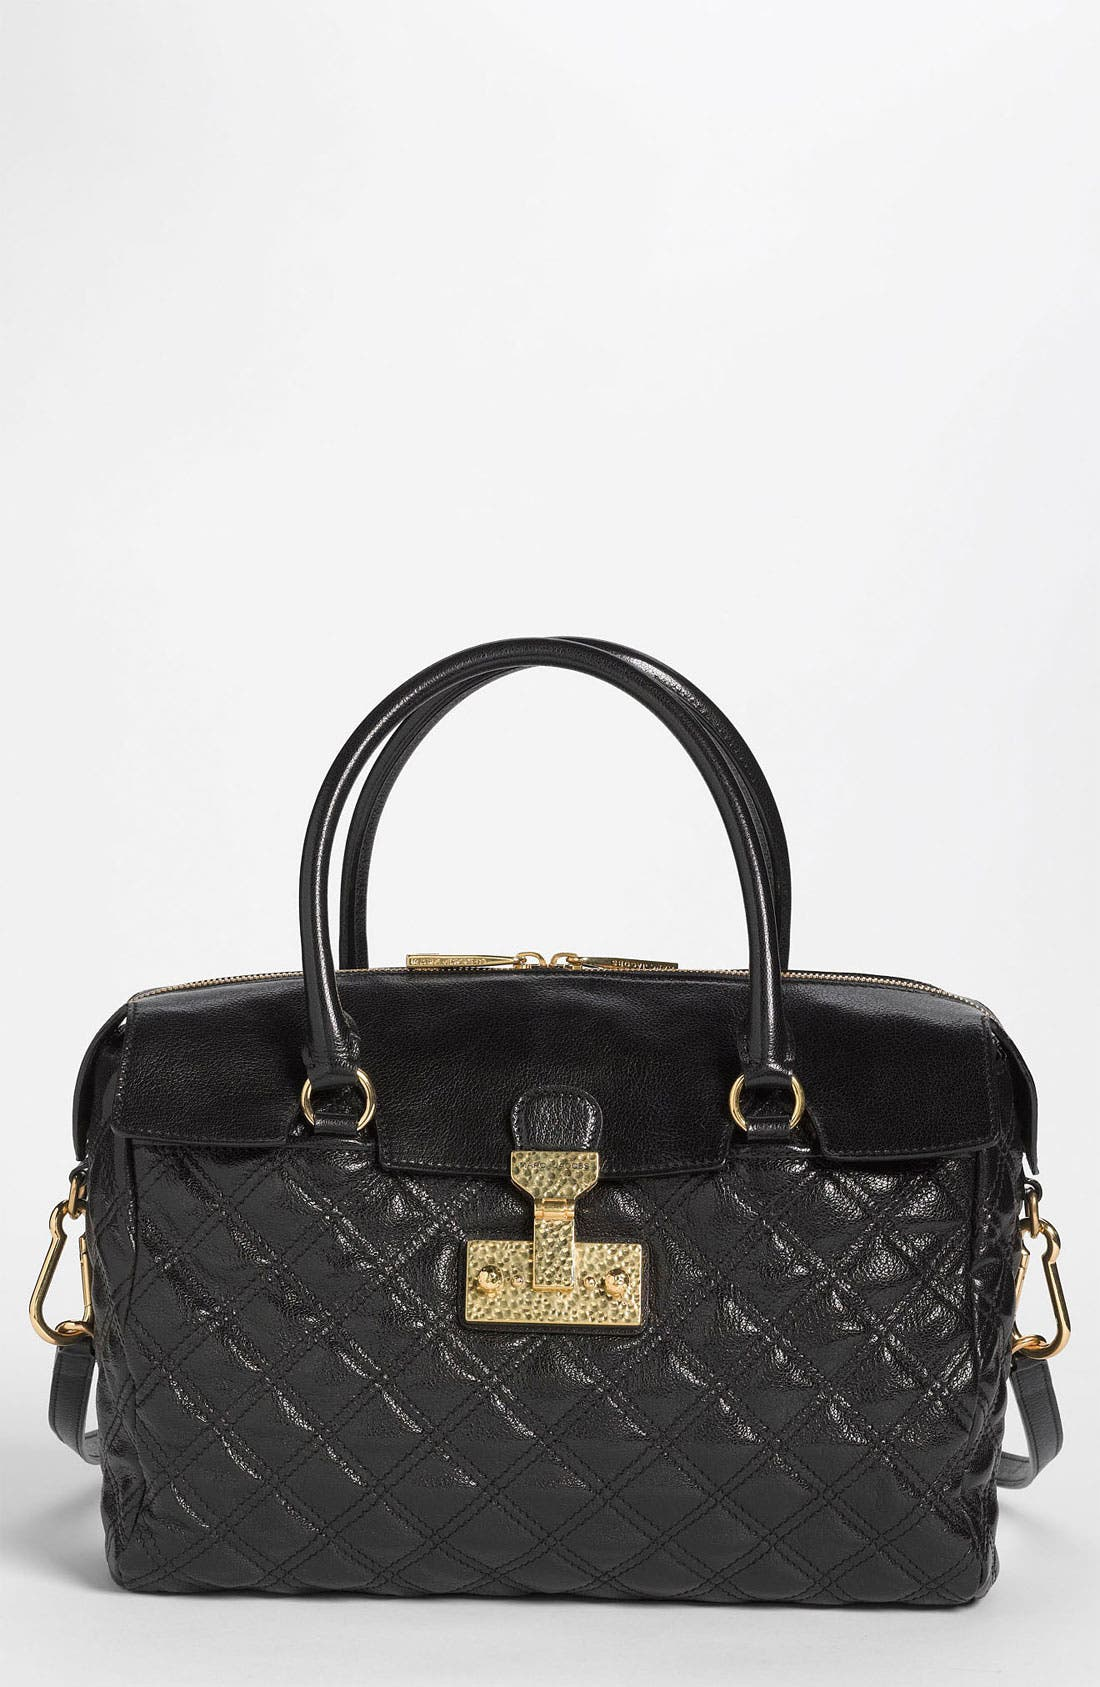 Alternate Image 1 Selected - MARC JACOBS 'Baroque - Rudi' Leather Satchel